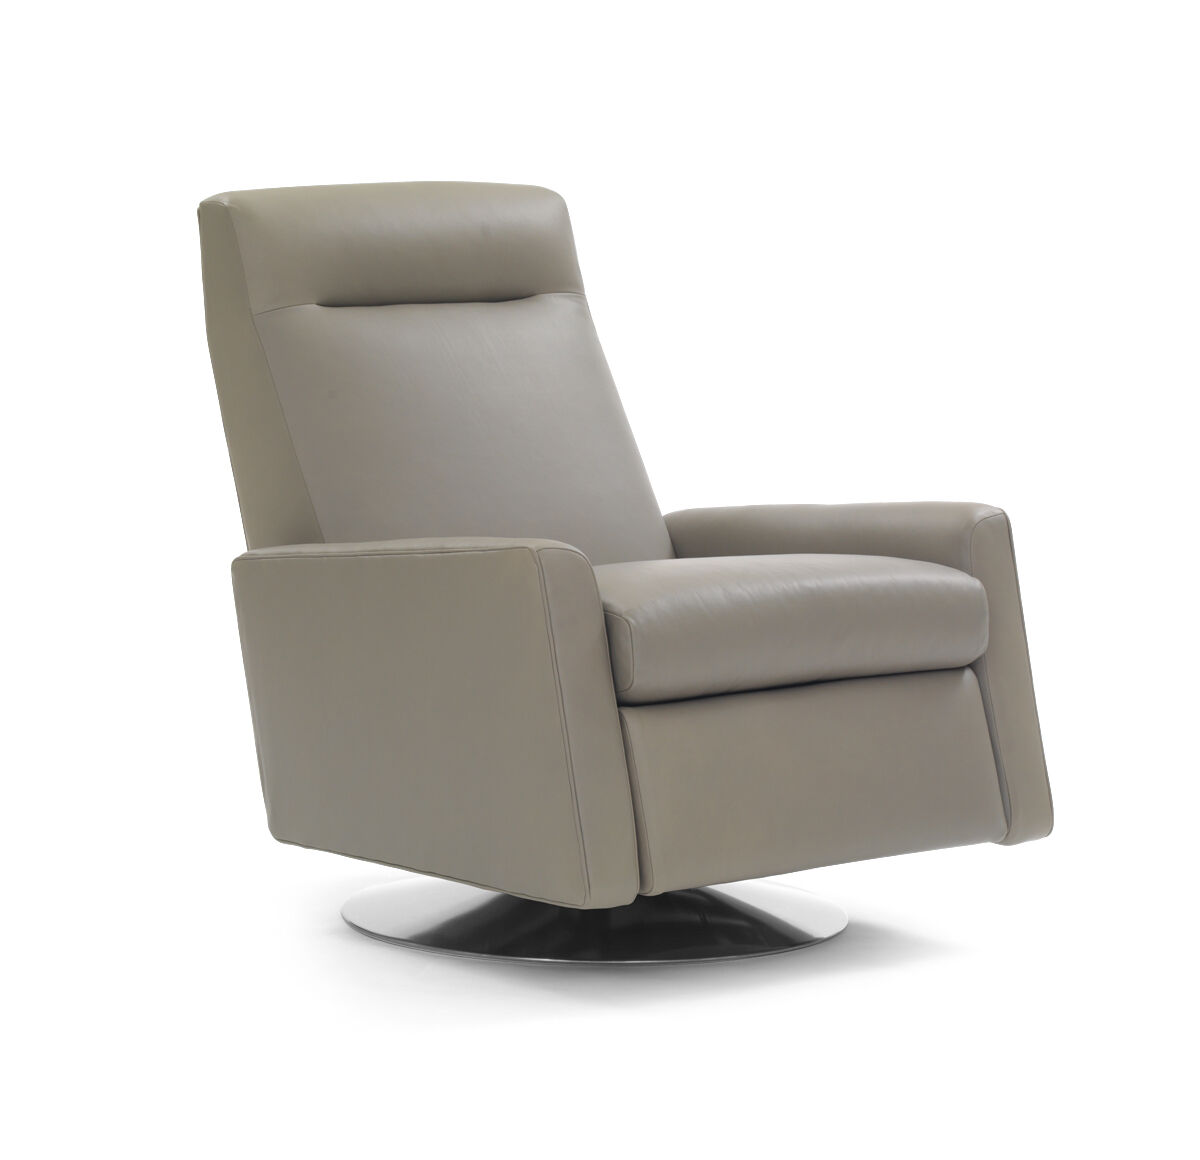 TILTON LEATHER RECLINER VANCE - DRIFTWOOD hi-res  sc 1 st  Recliners & Recliners islam-shia.org